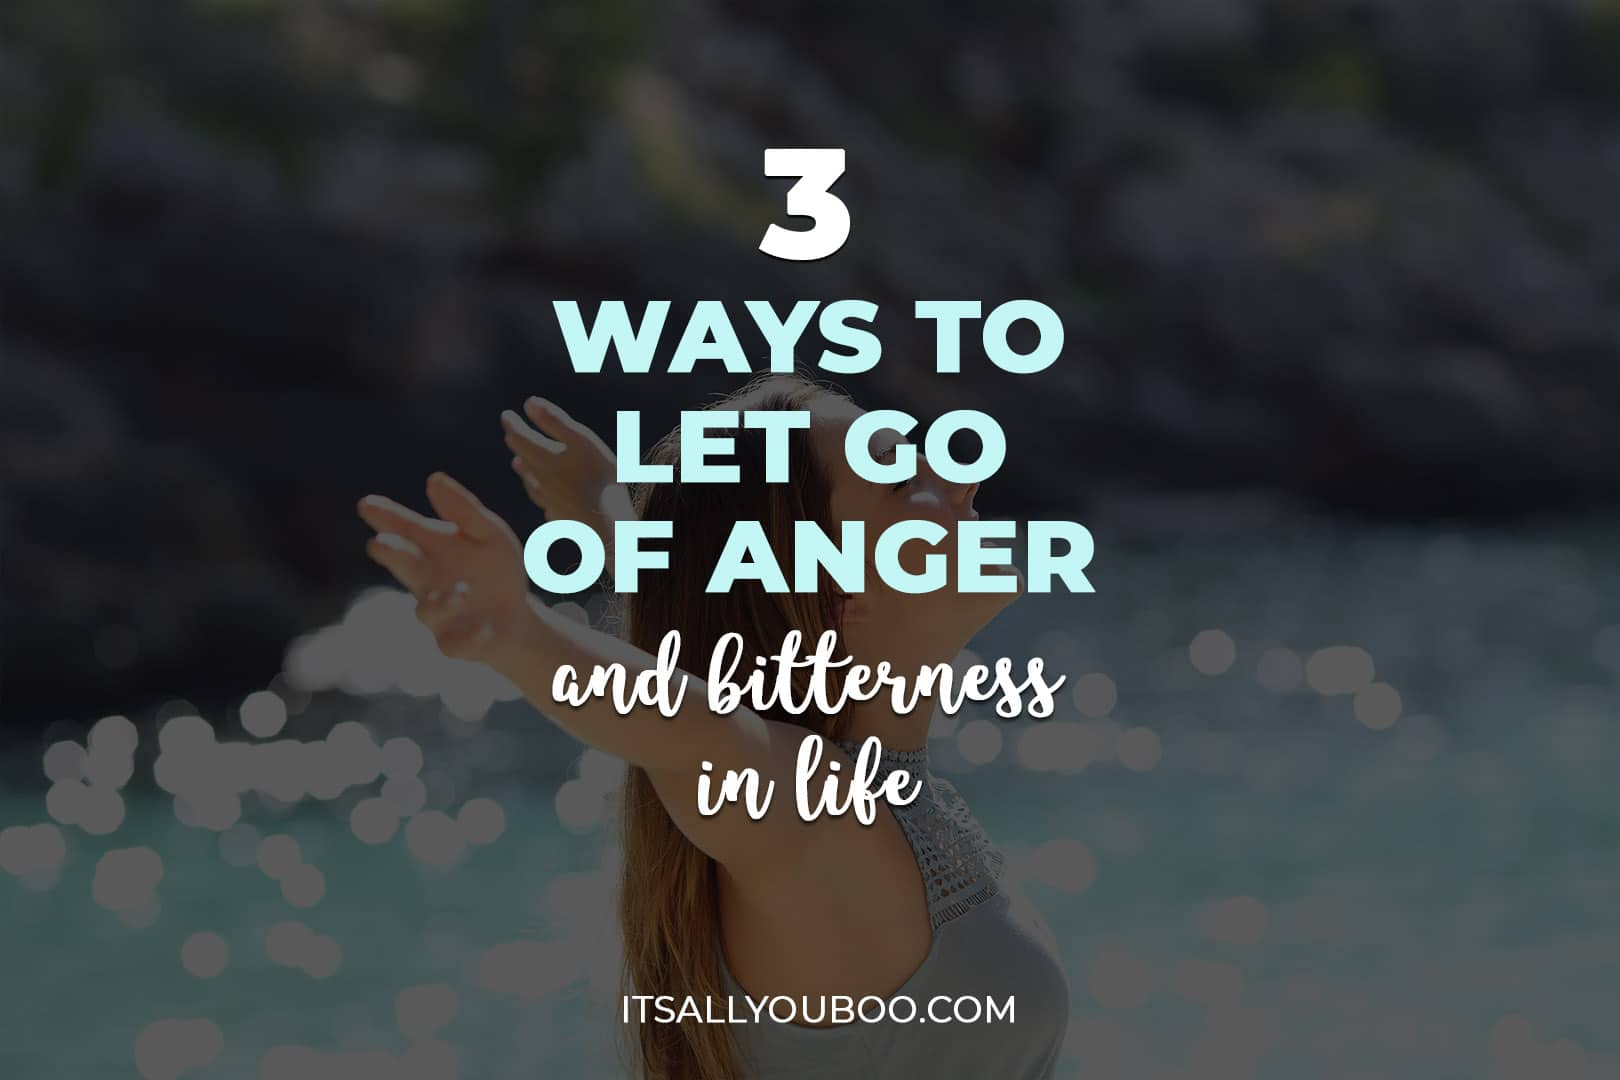 3 Ways To Let Go Of Anger and Bitterness in Life